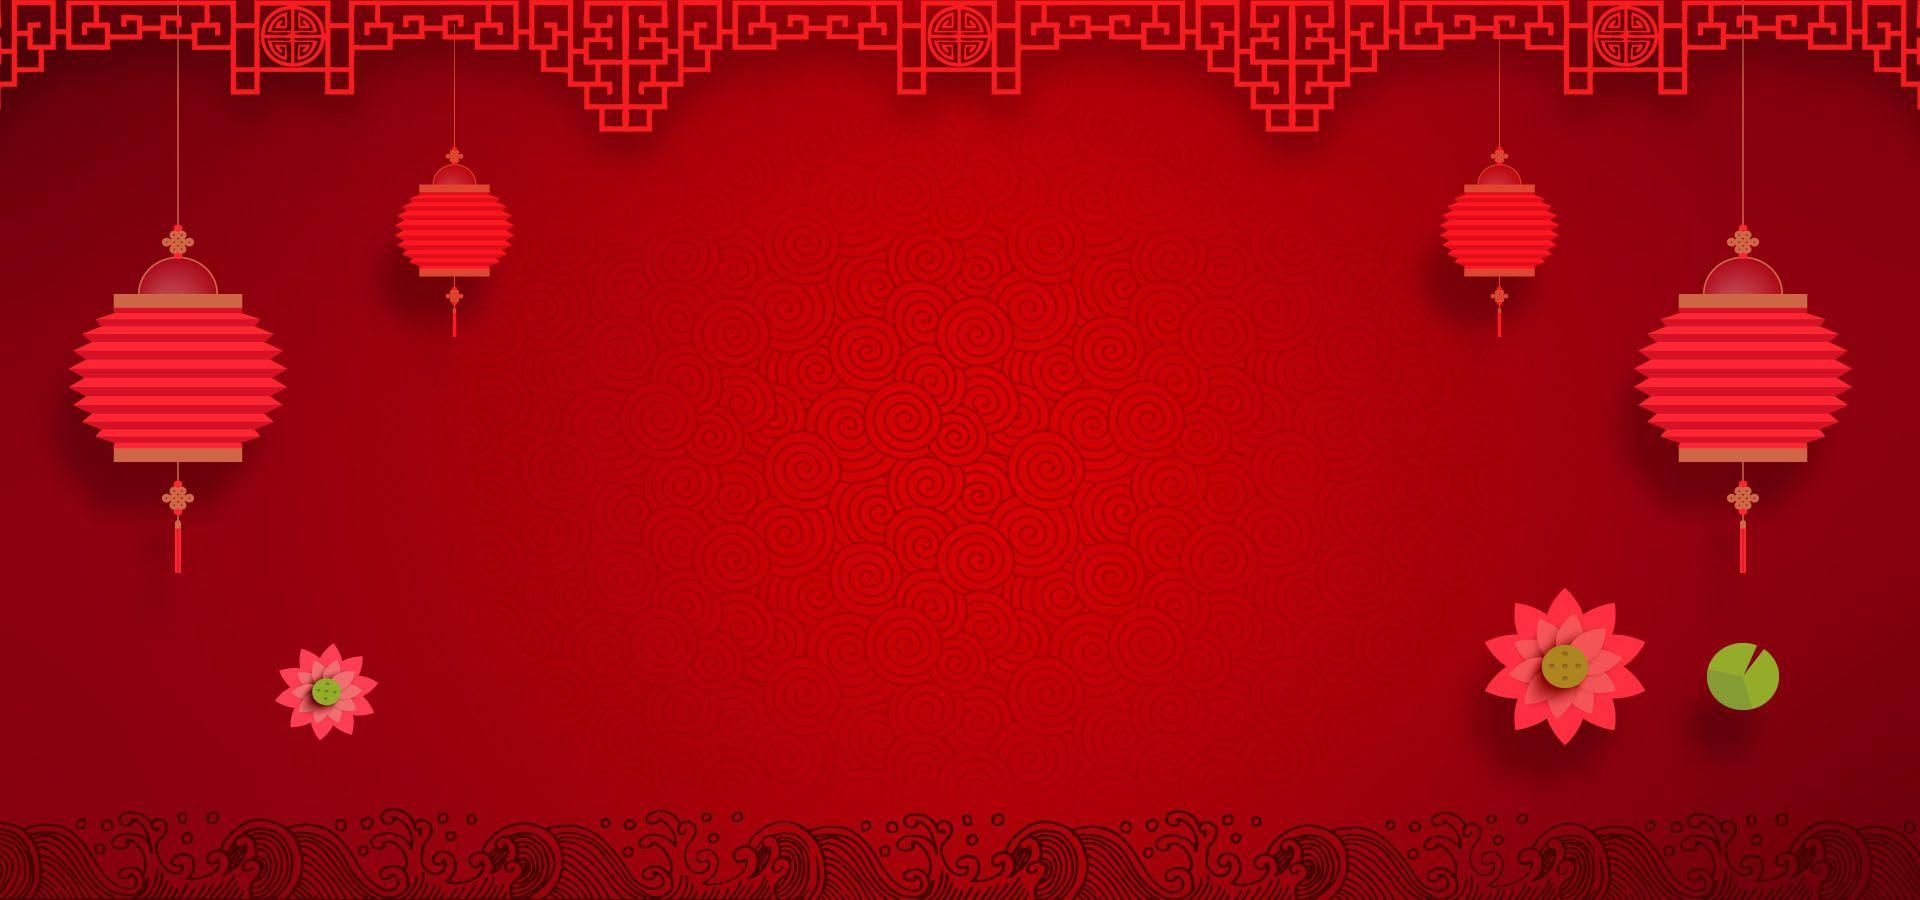 Chinese New Year Festive Red Chinese Style Poster Banner Backgrounds